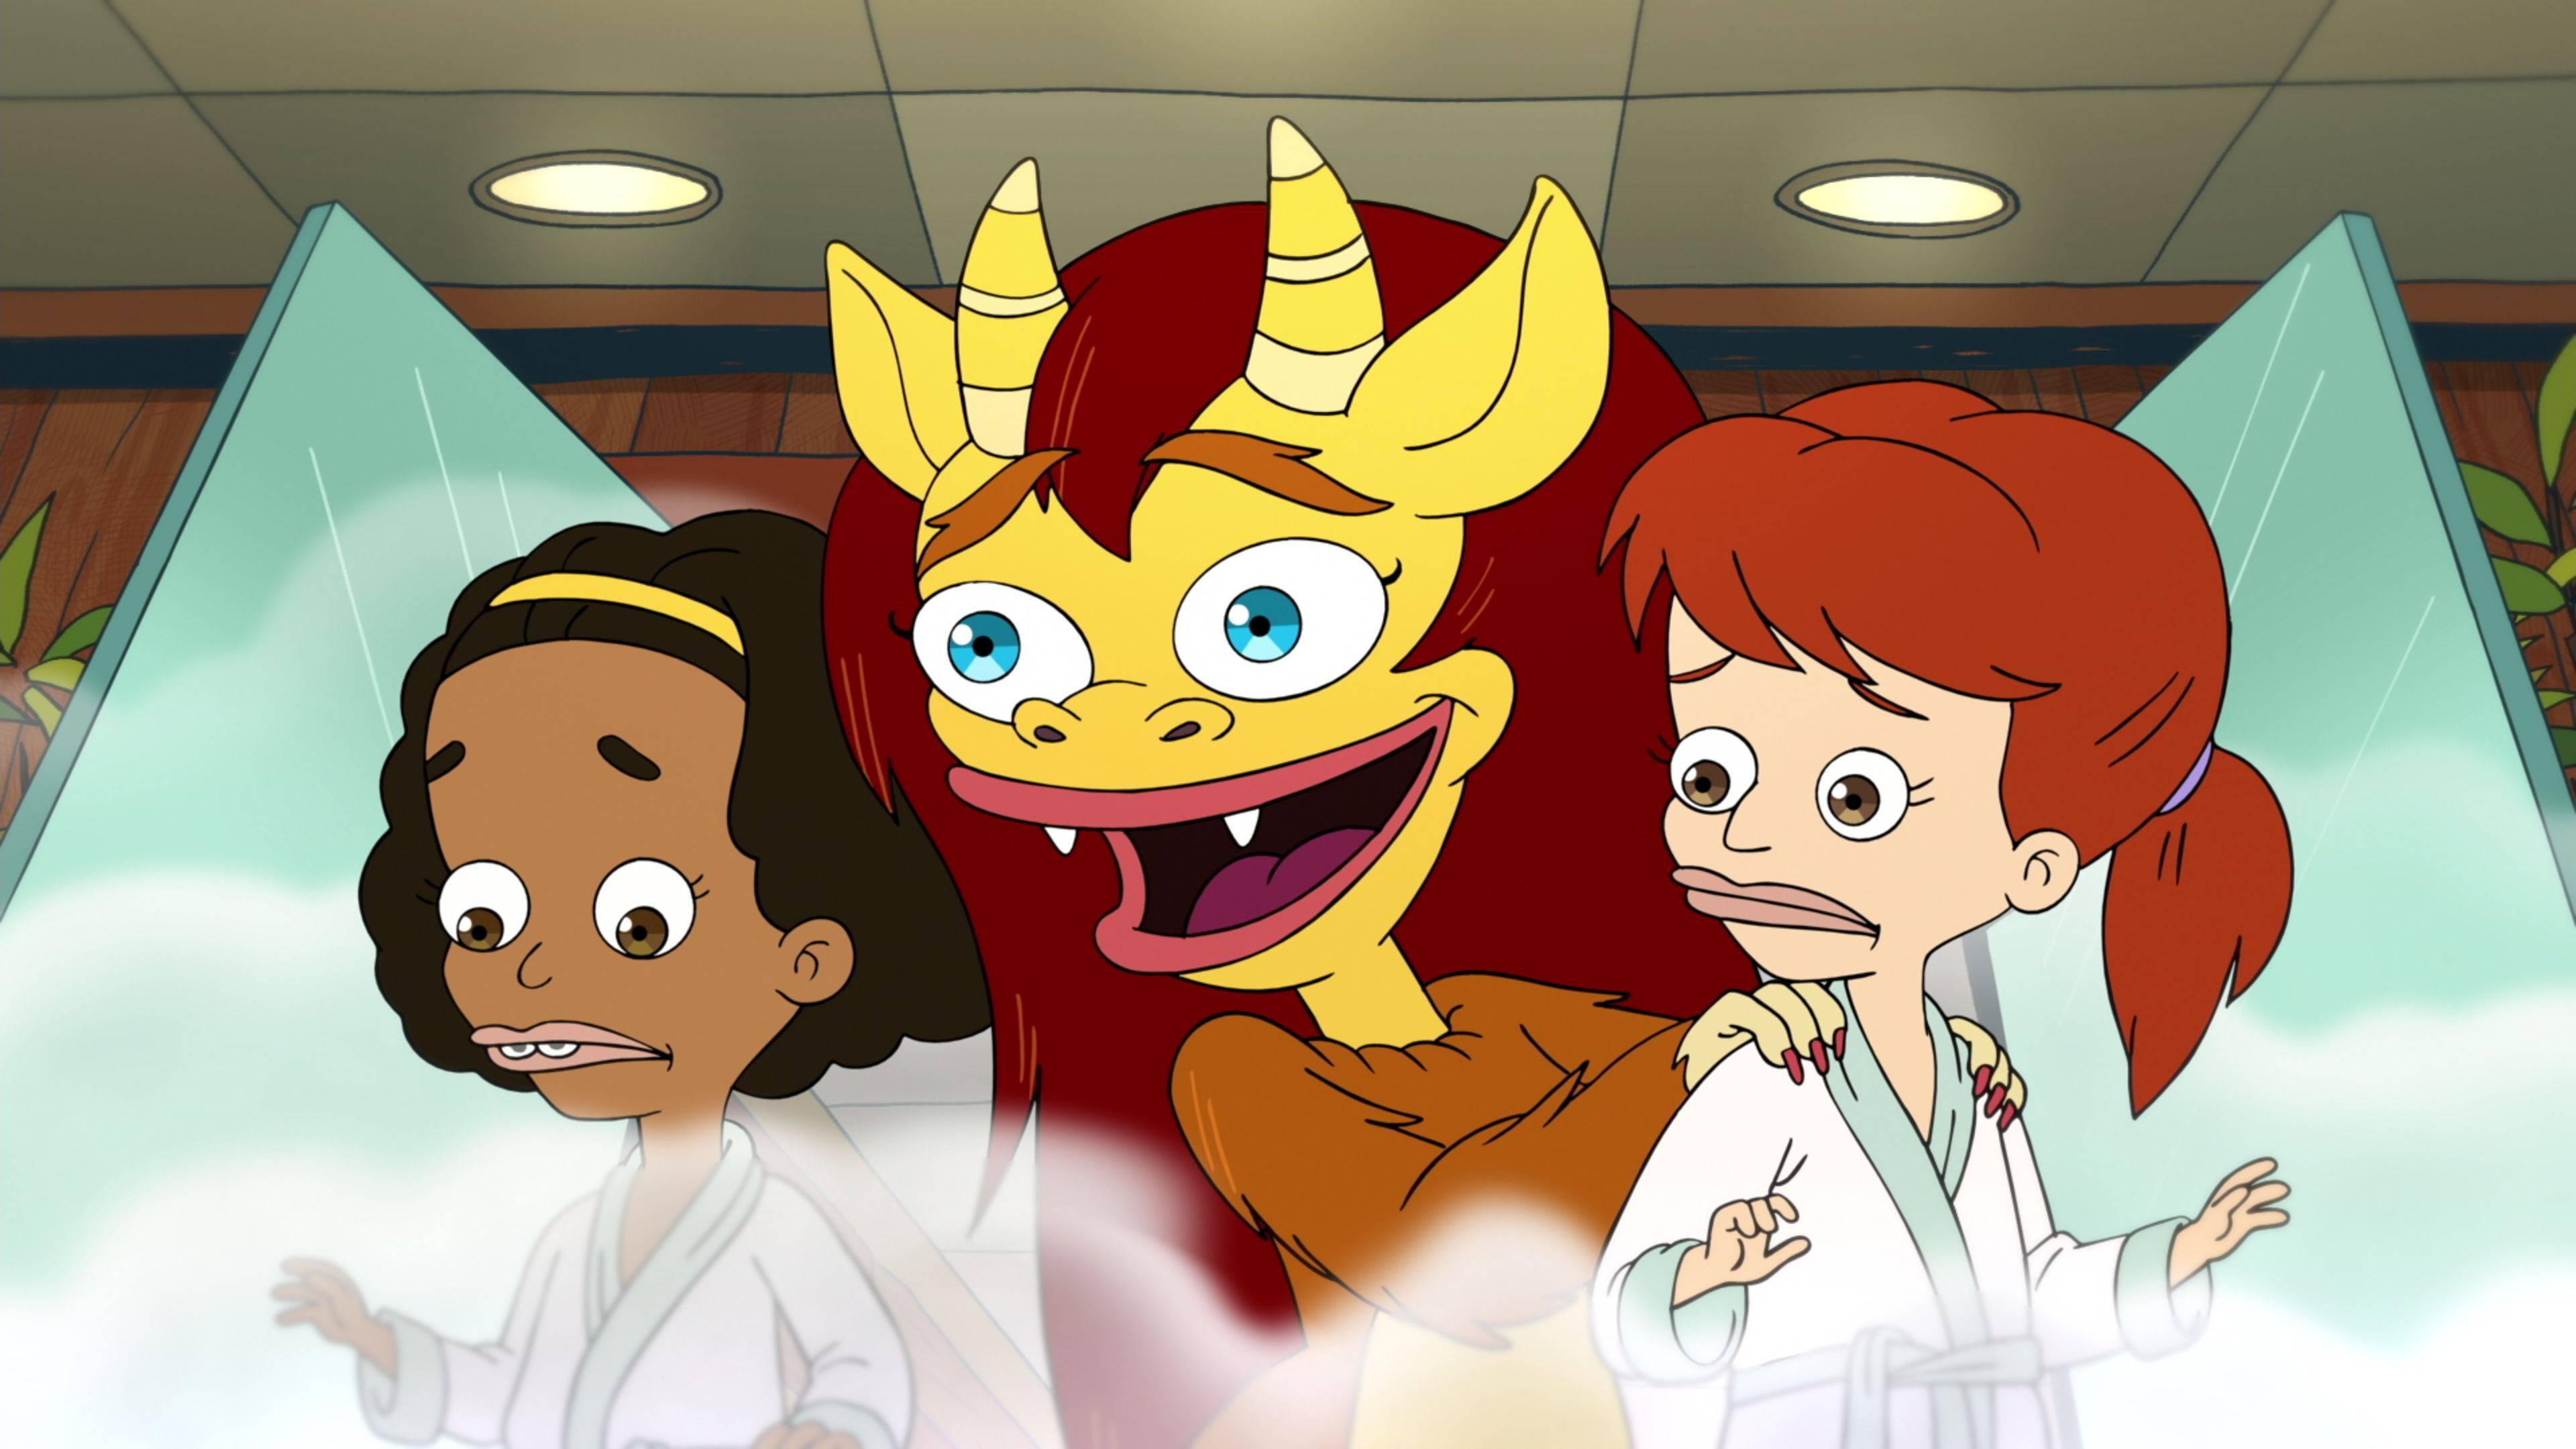 Big Mouth season 3 confirmed to release this October